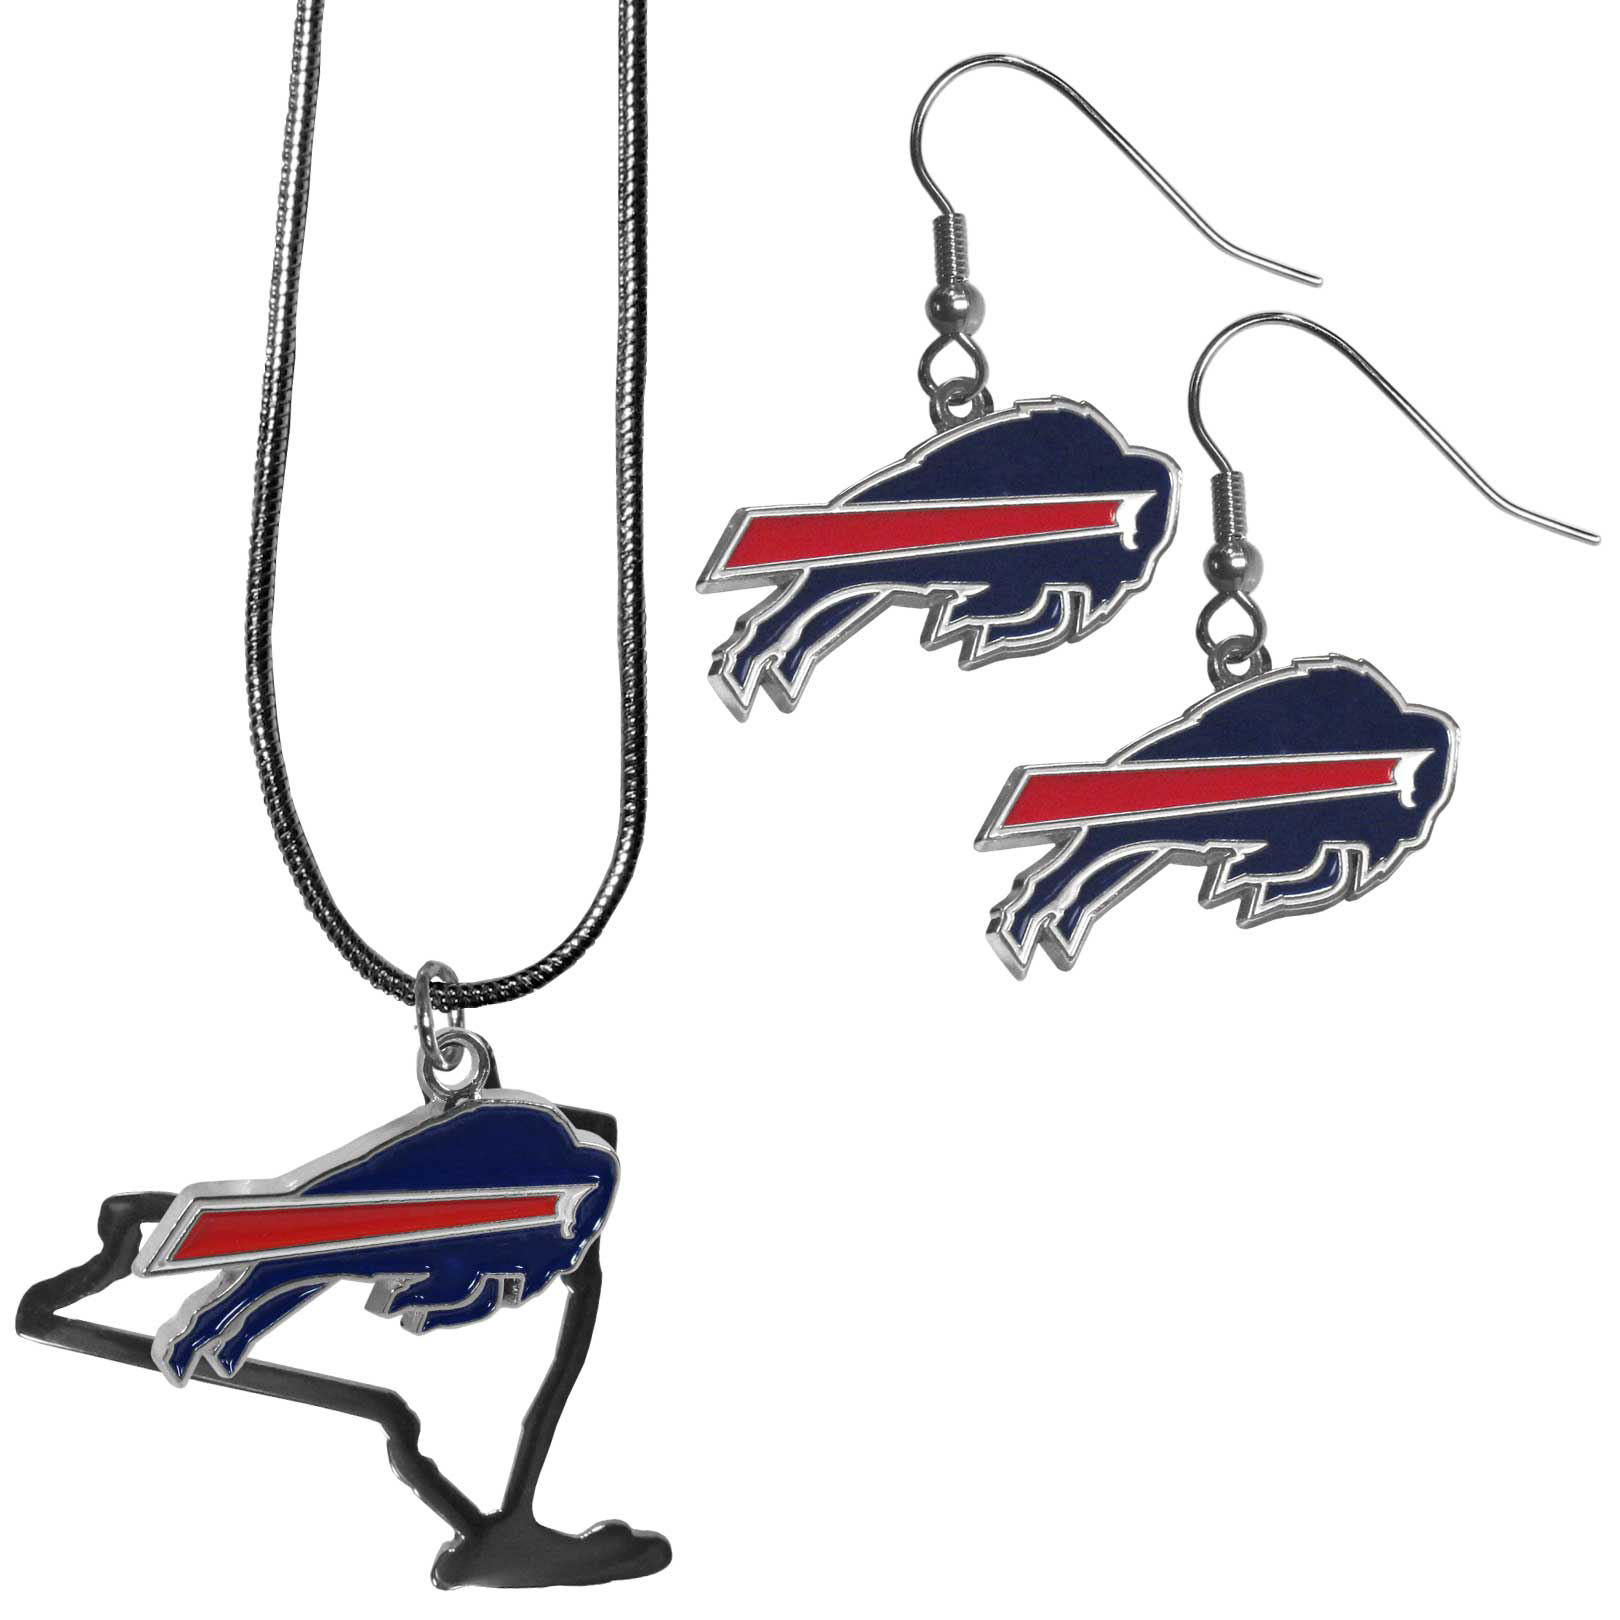 Buffalo Bills Dangle Earrings and State Necklace Set - Get in on the trend! State themes are a trend that just keeps getting more popular and this jewelry set takes the state style and give it a sporty twist with a Buffalo Bills necklace that features an Arizona state outline charm paired with a beautiful team charm and matching team charm dangle earrings. The earrings feature hypoallergenic fishhook posts that are nickel free.